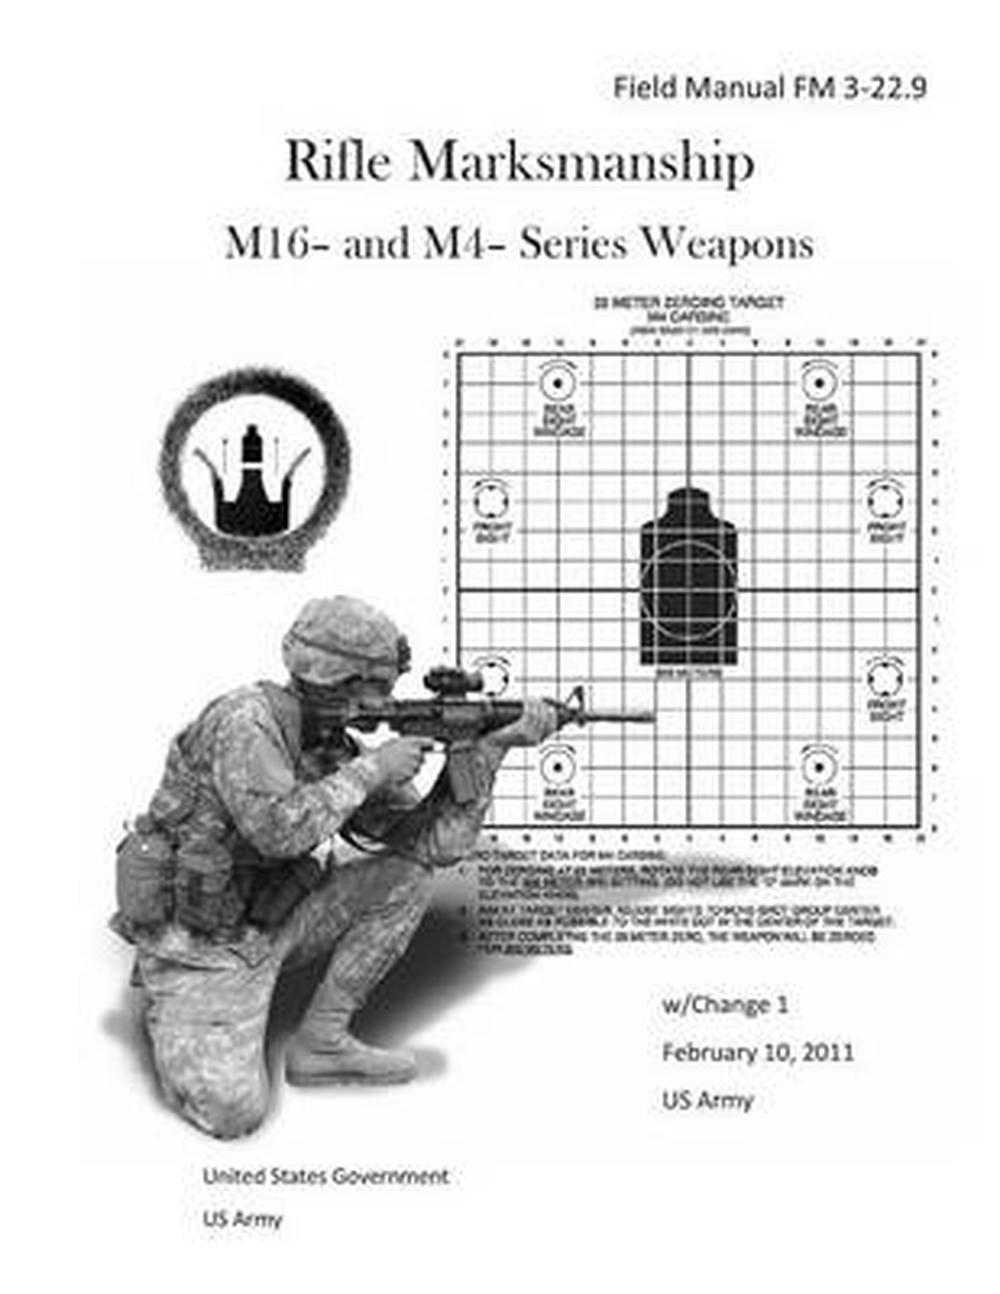 Field Manual FM 3-22.9 Rifle Marksmanship M16- And M4